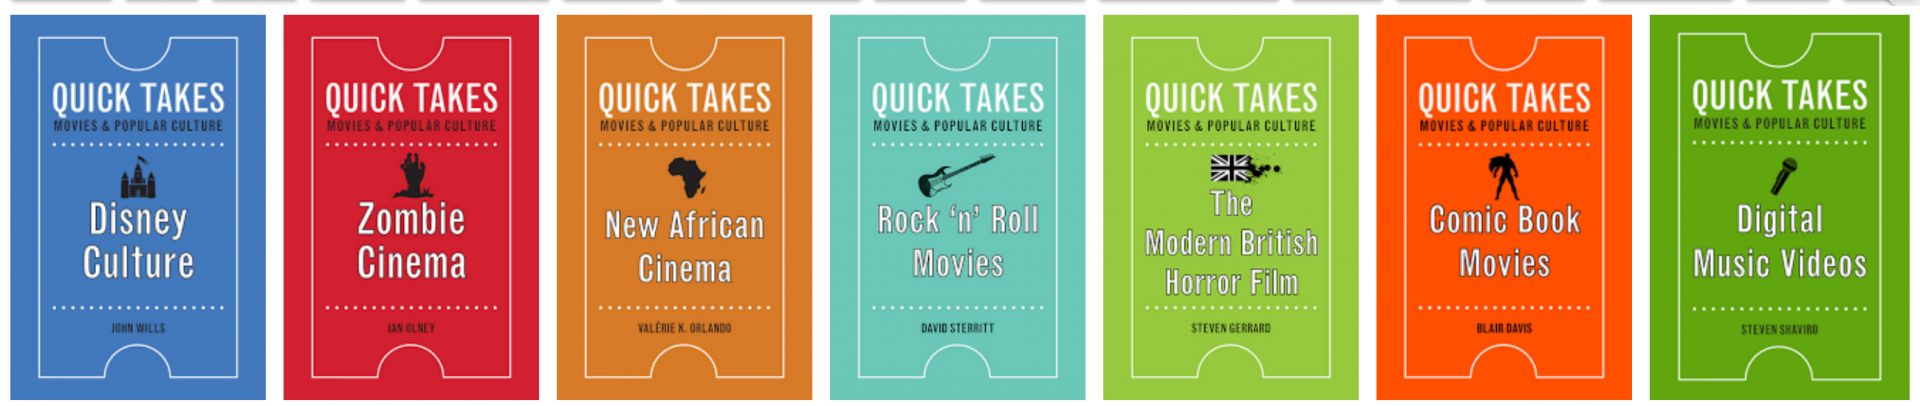 Quick Takes book series covers